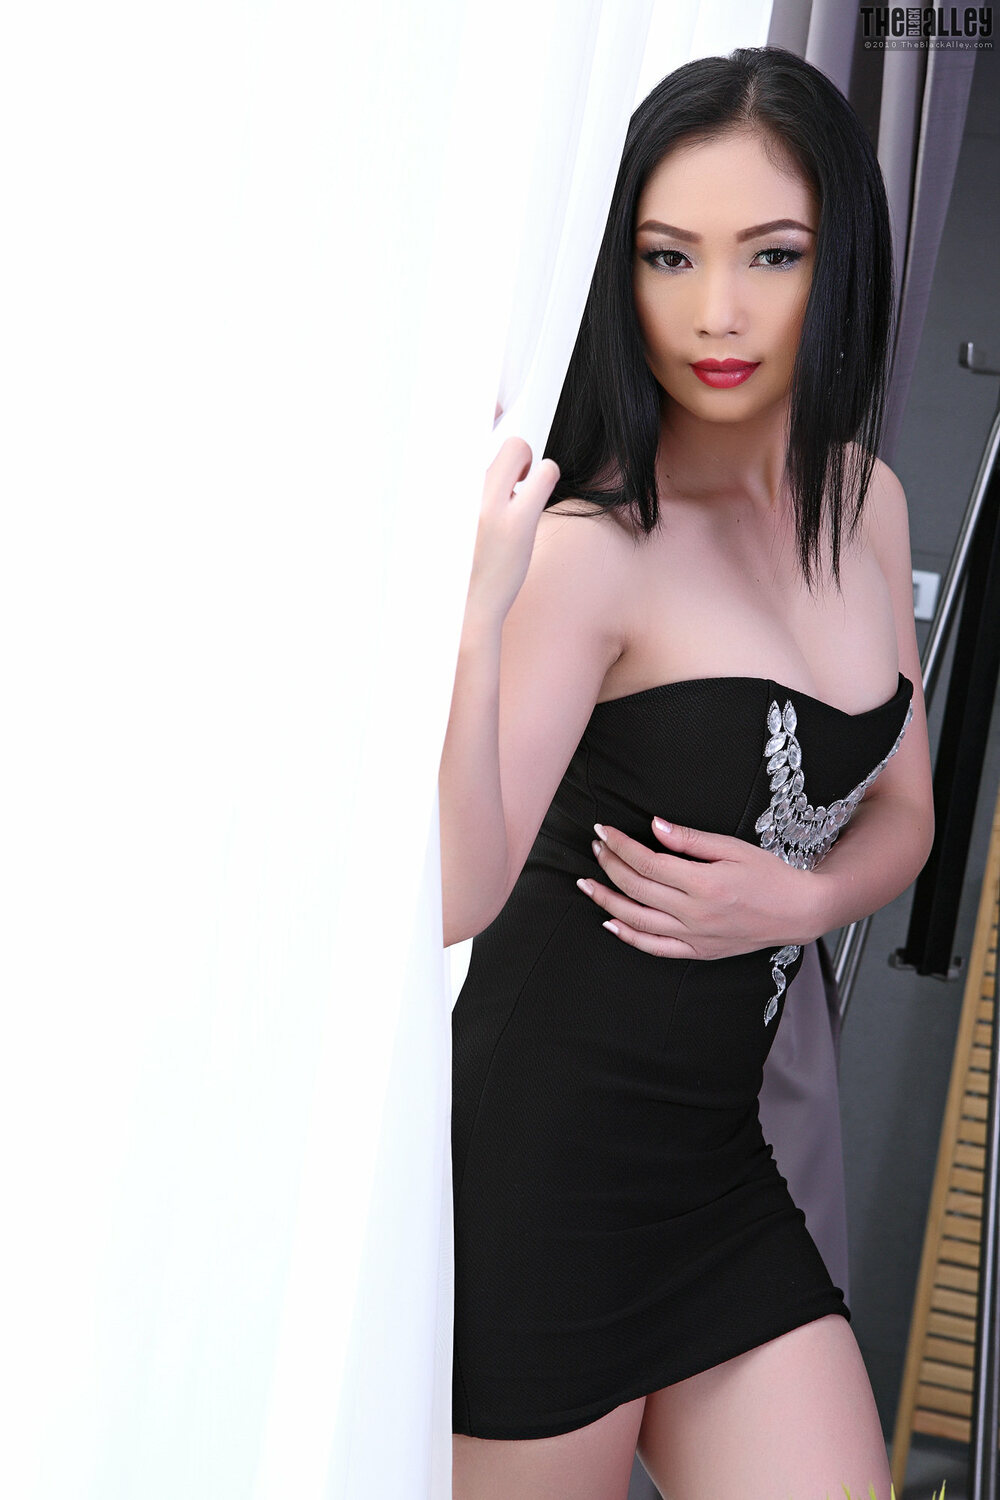 [The Black Alley] Lin Si Yee Photo Set.21